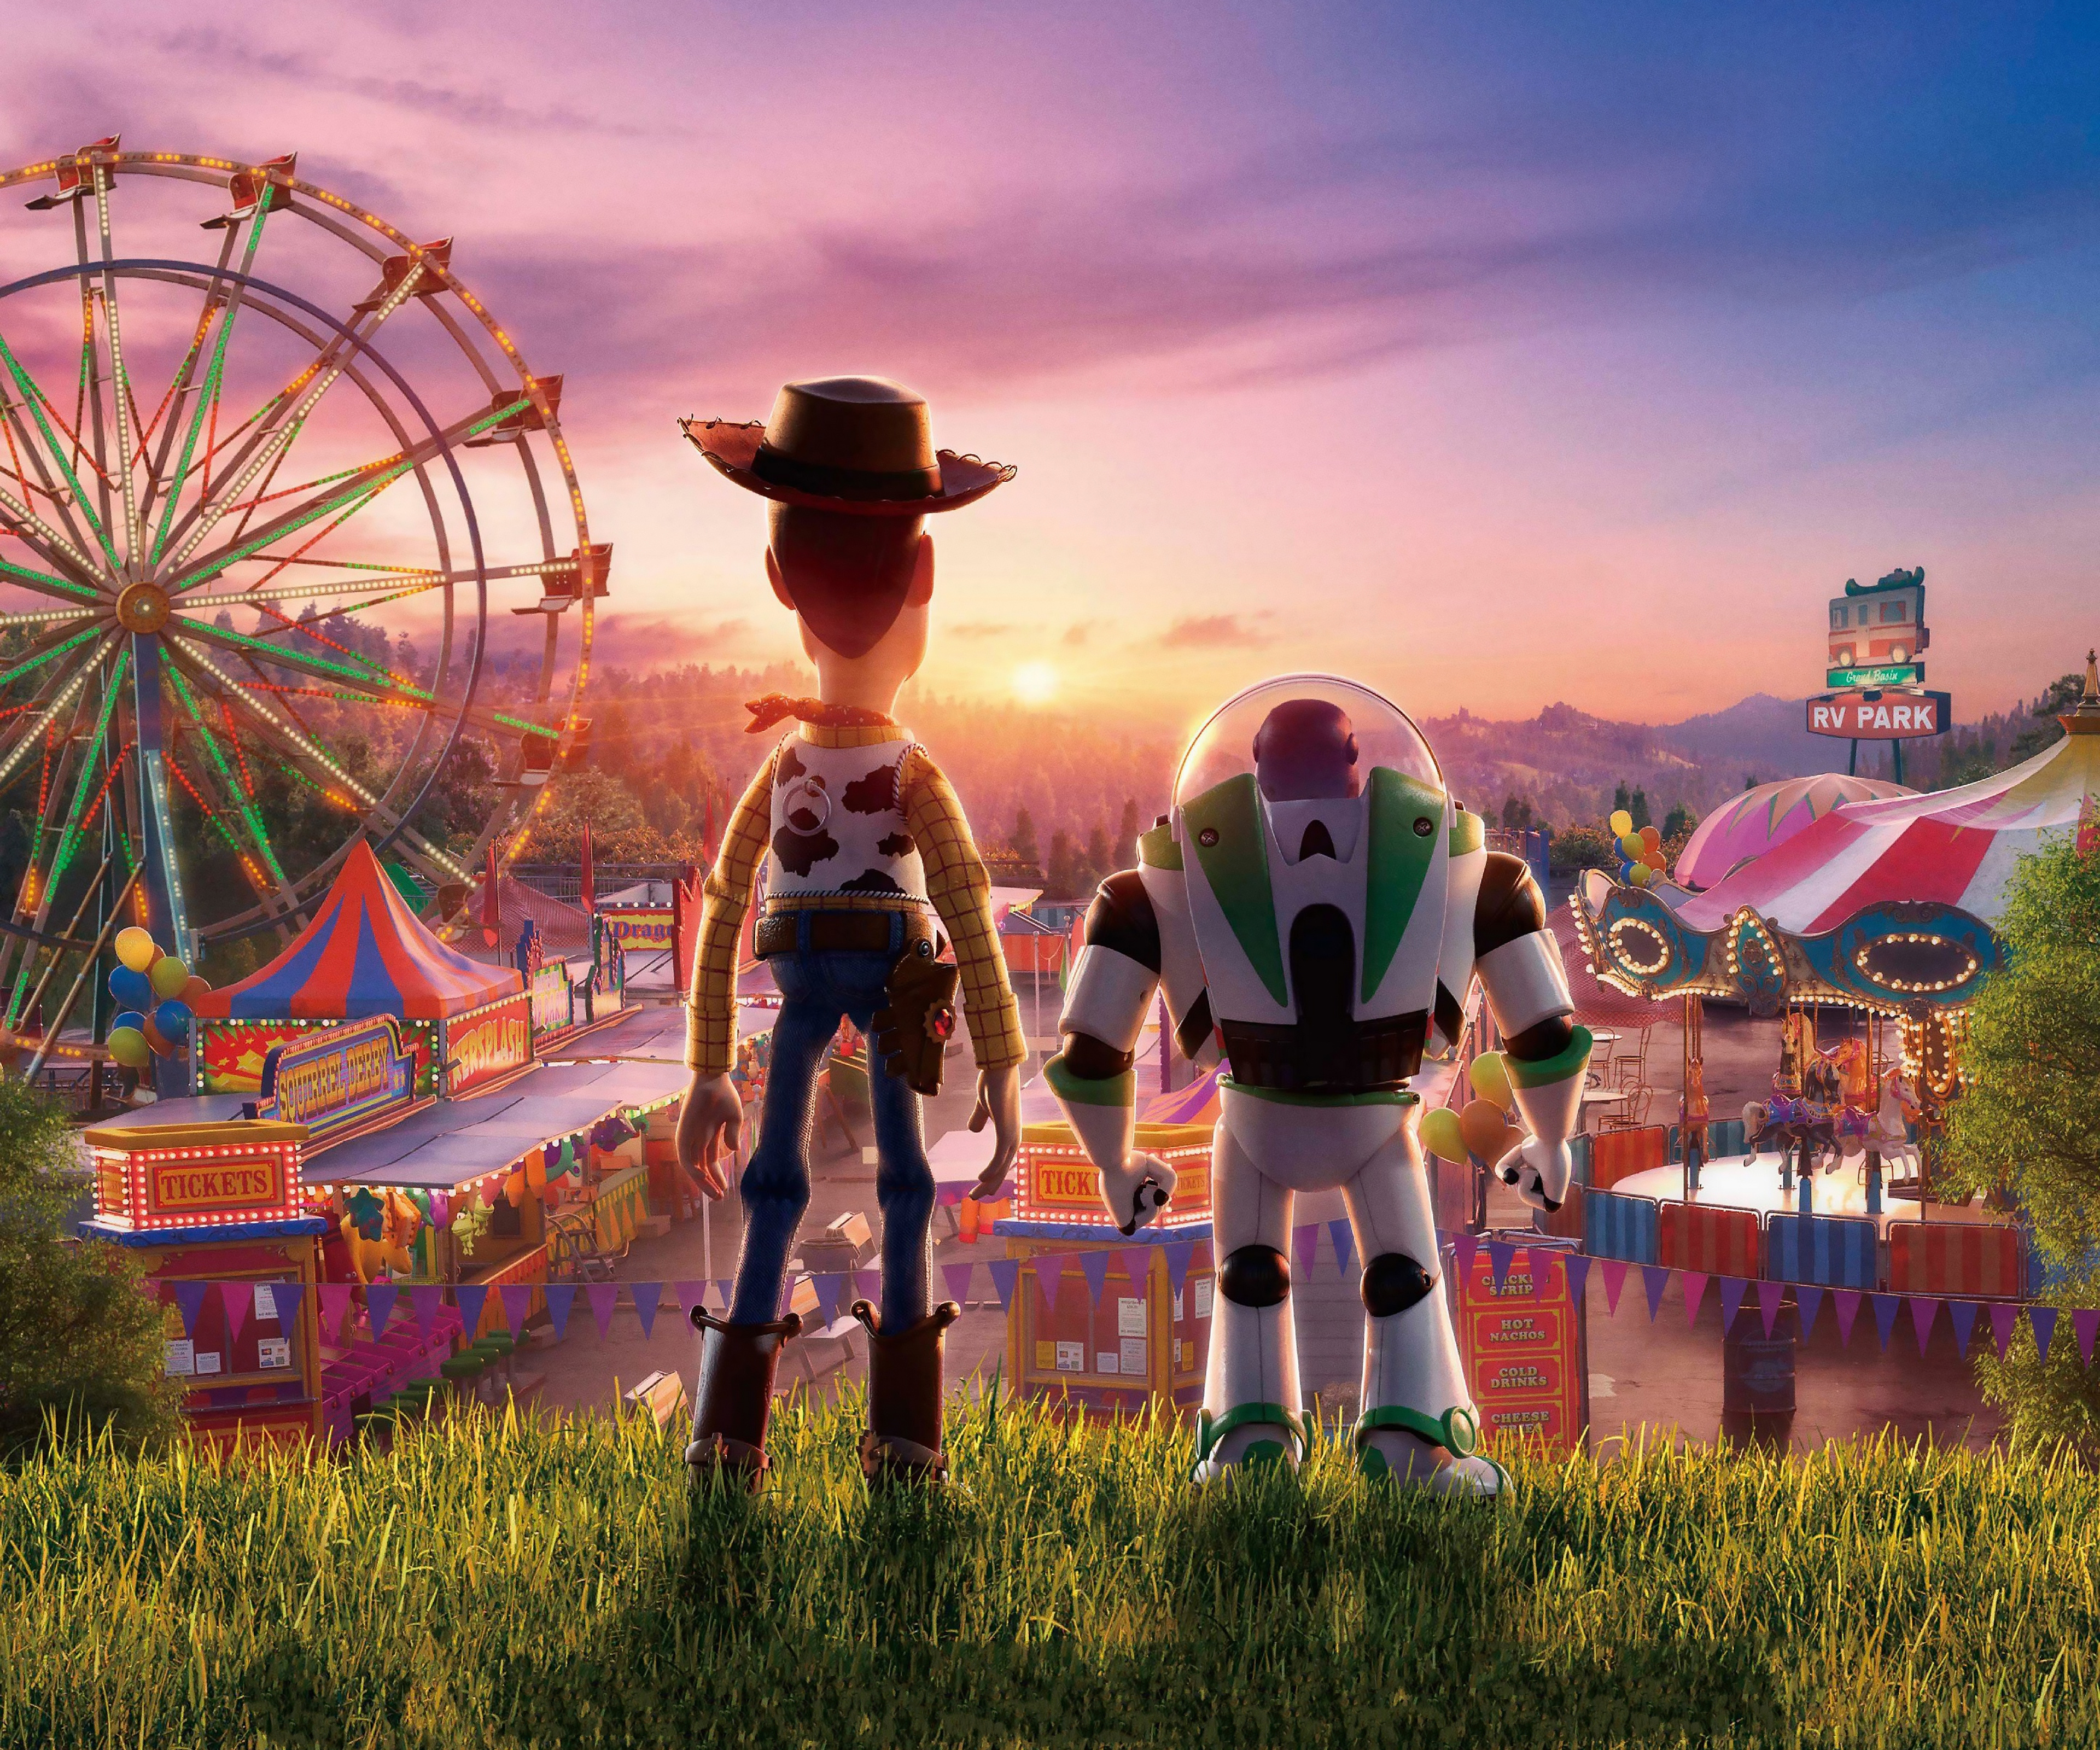 Toy Story 4 Woody and Buzz Lightyear Wallpaper 4k Ultra HD ID3310 3840x3200